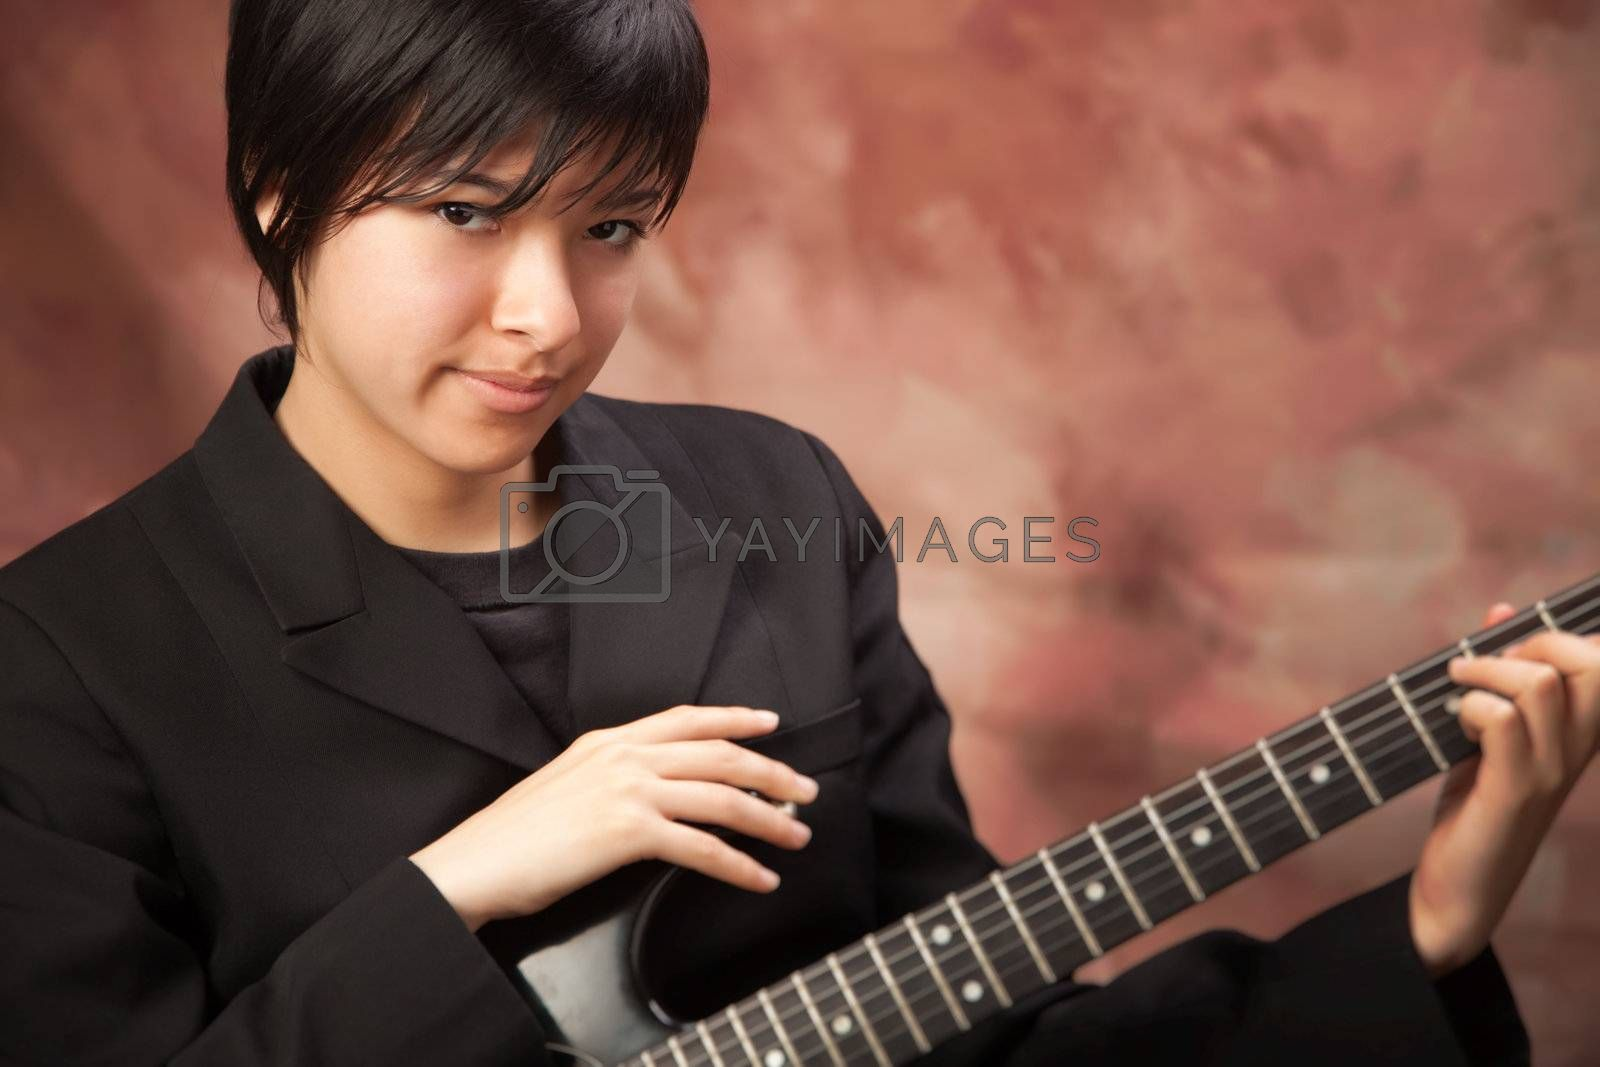 Multiethnic Girl Poses with Electric Guitar by Feverpitched